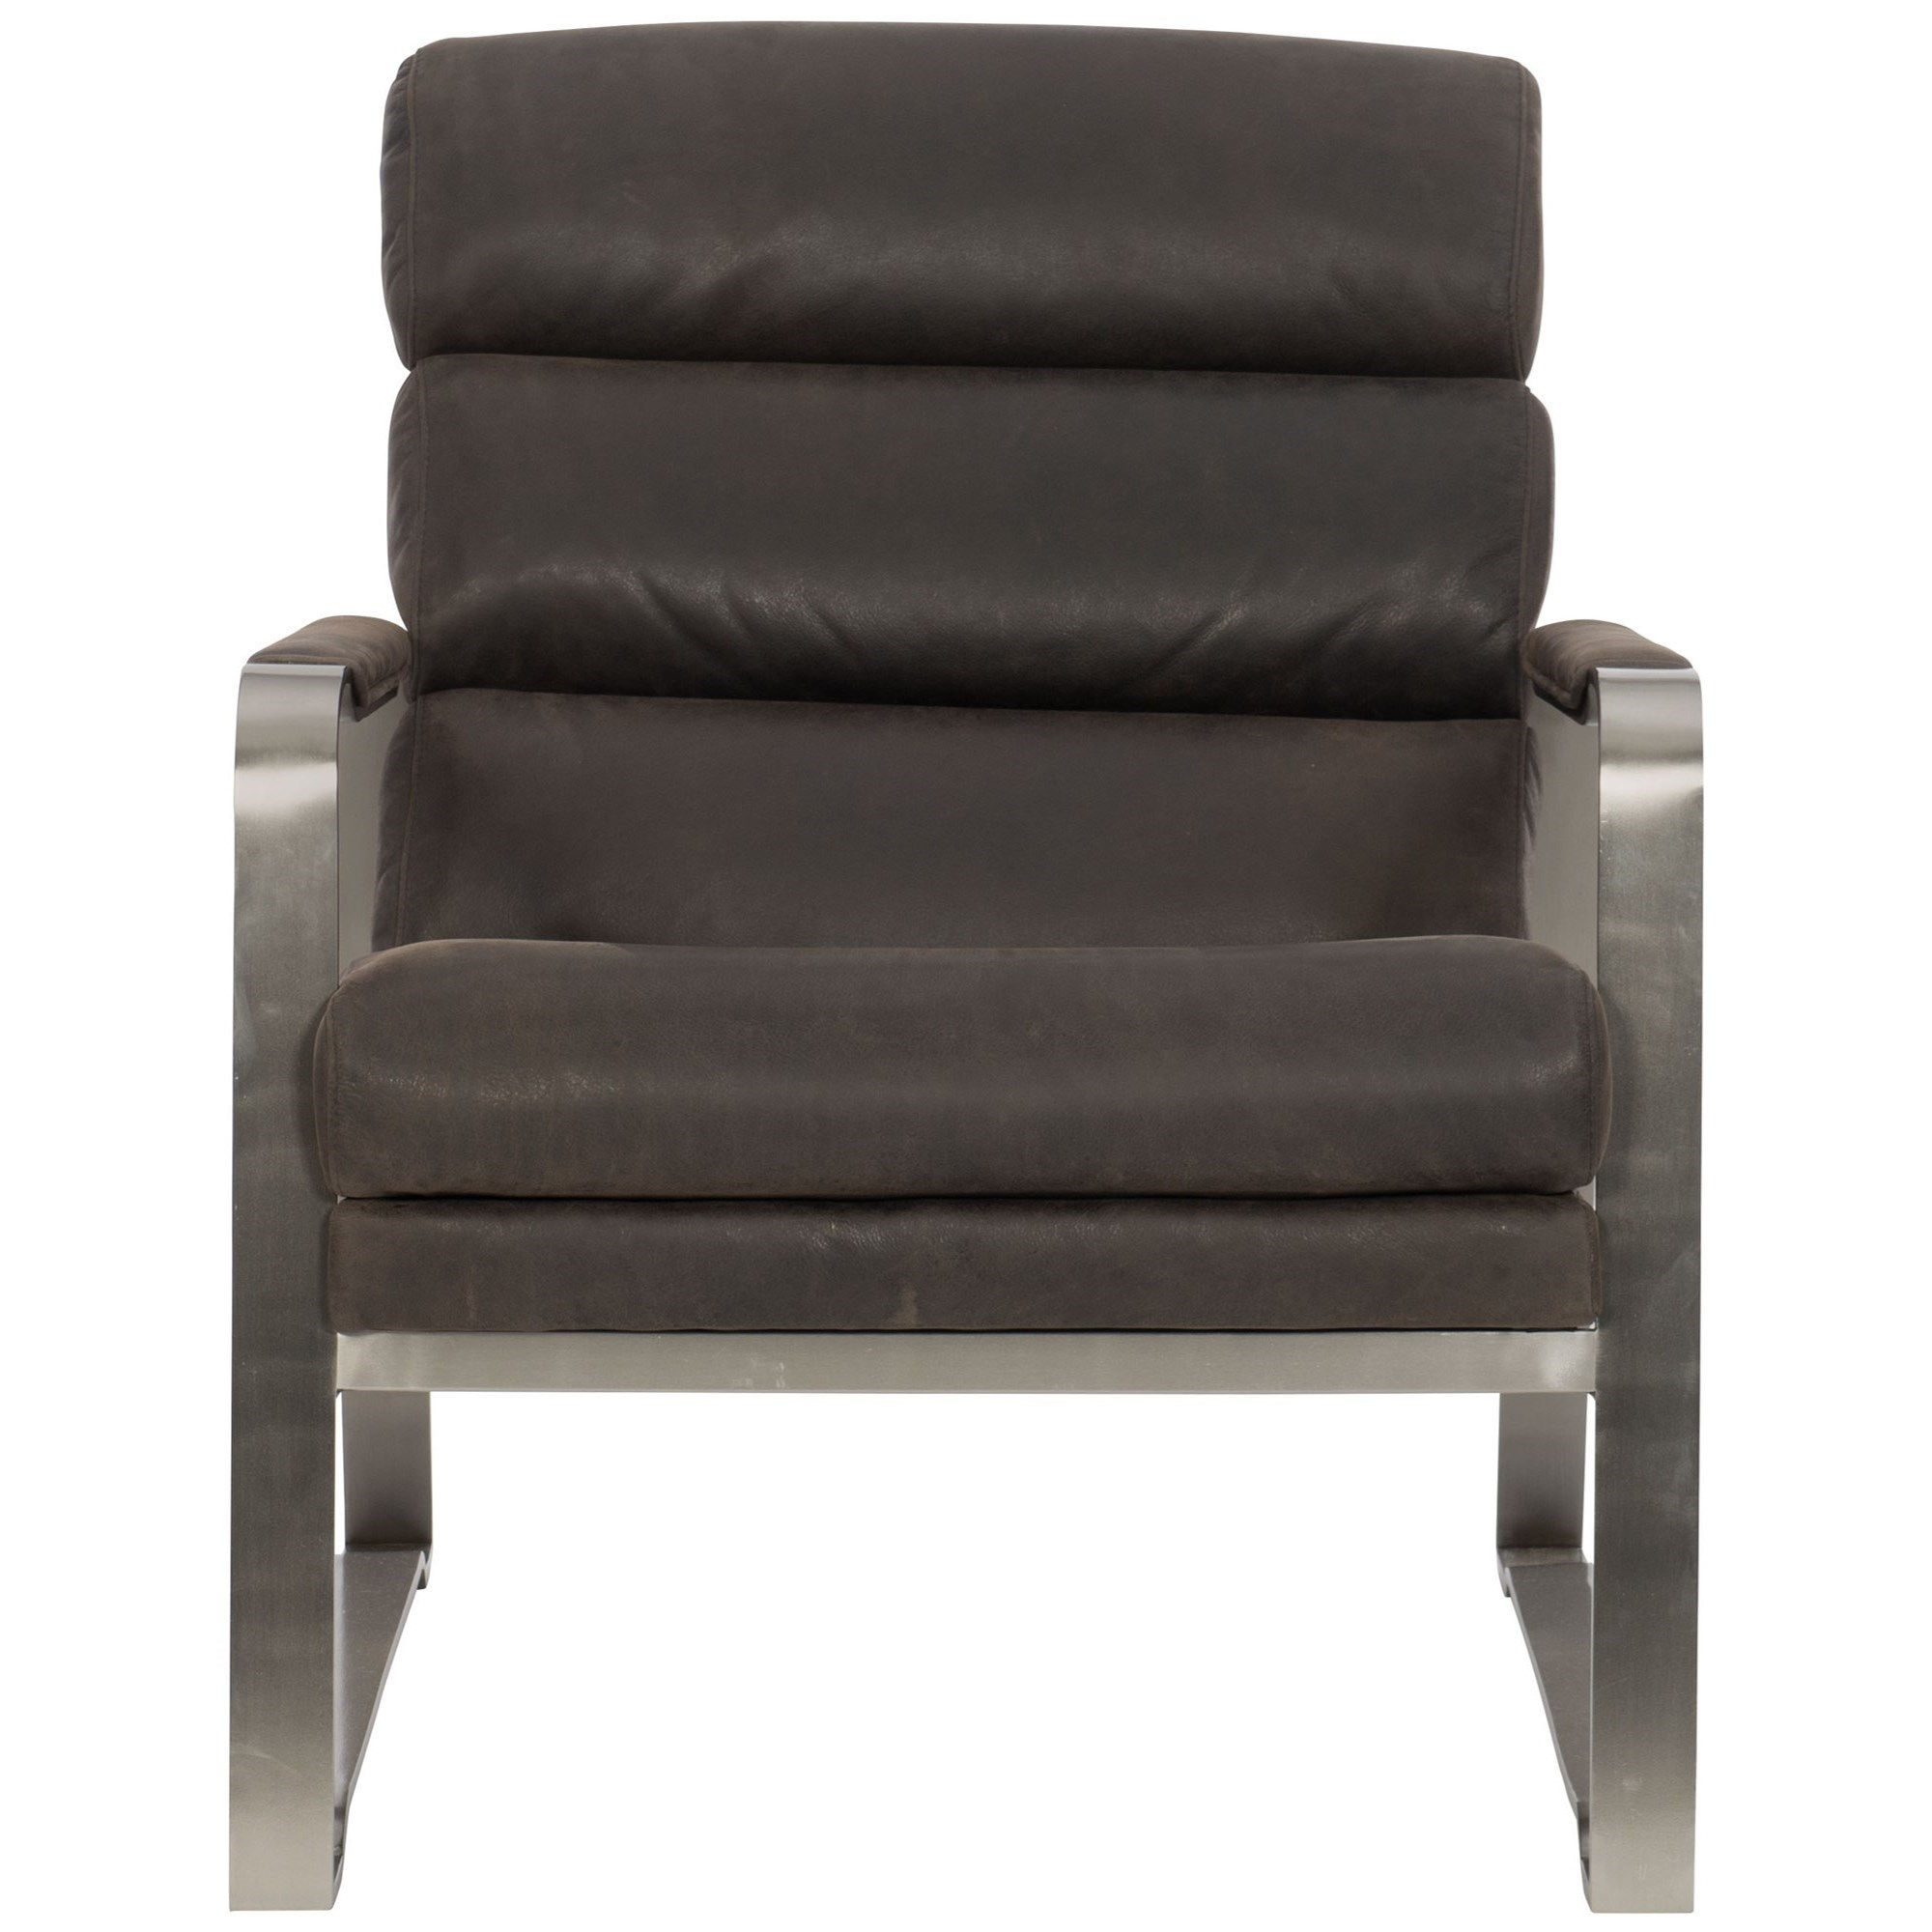 Bernhardt Stinson Upholstered Chair With Metal Frame | Louis Mohana  Furniture | Upholstered Chairs